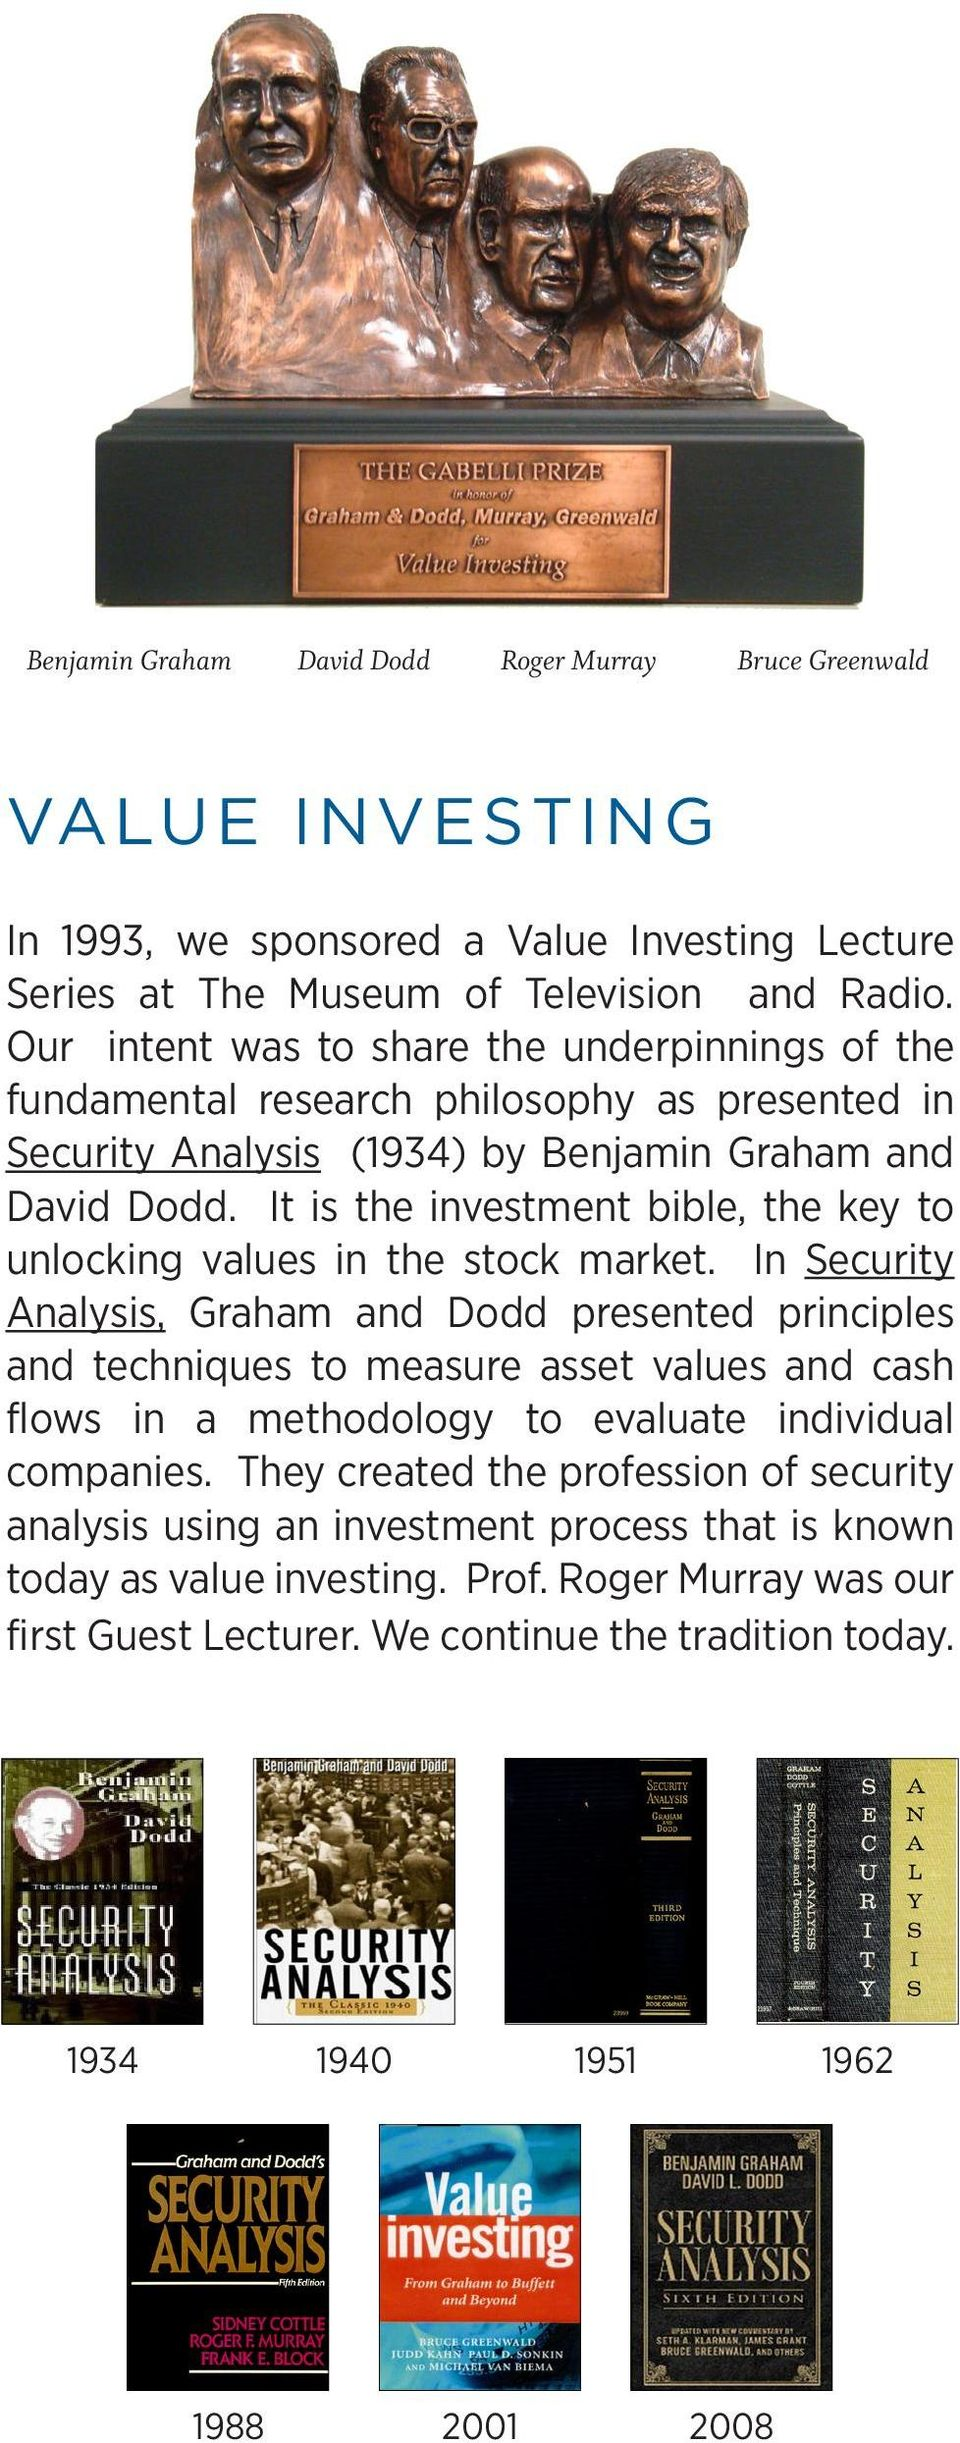 It is the investment bible, the key to unlocking values in the stock market.